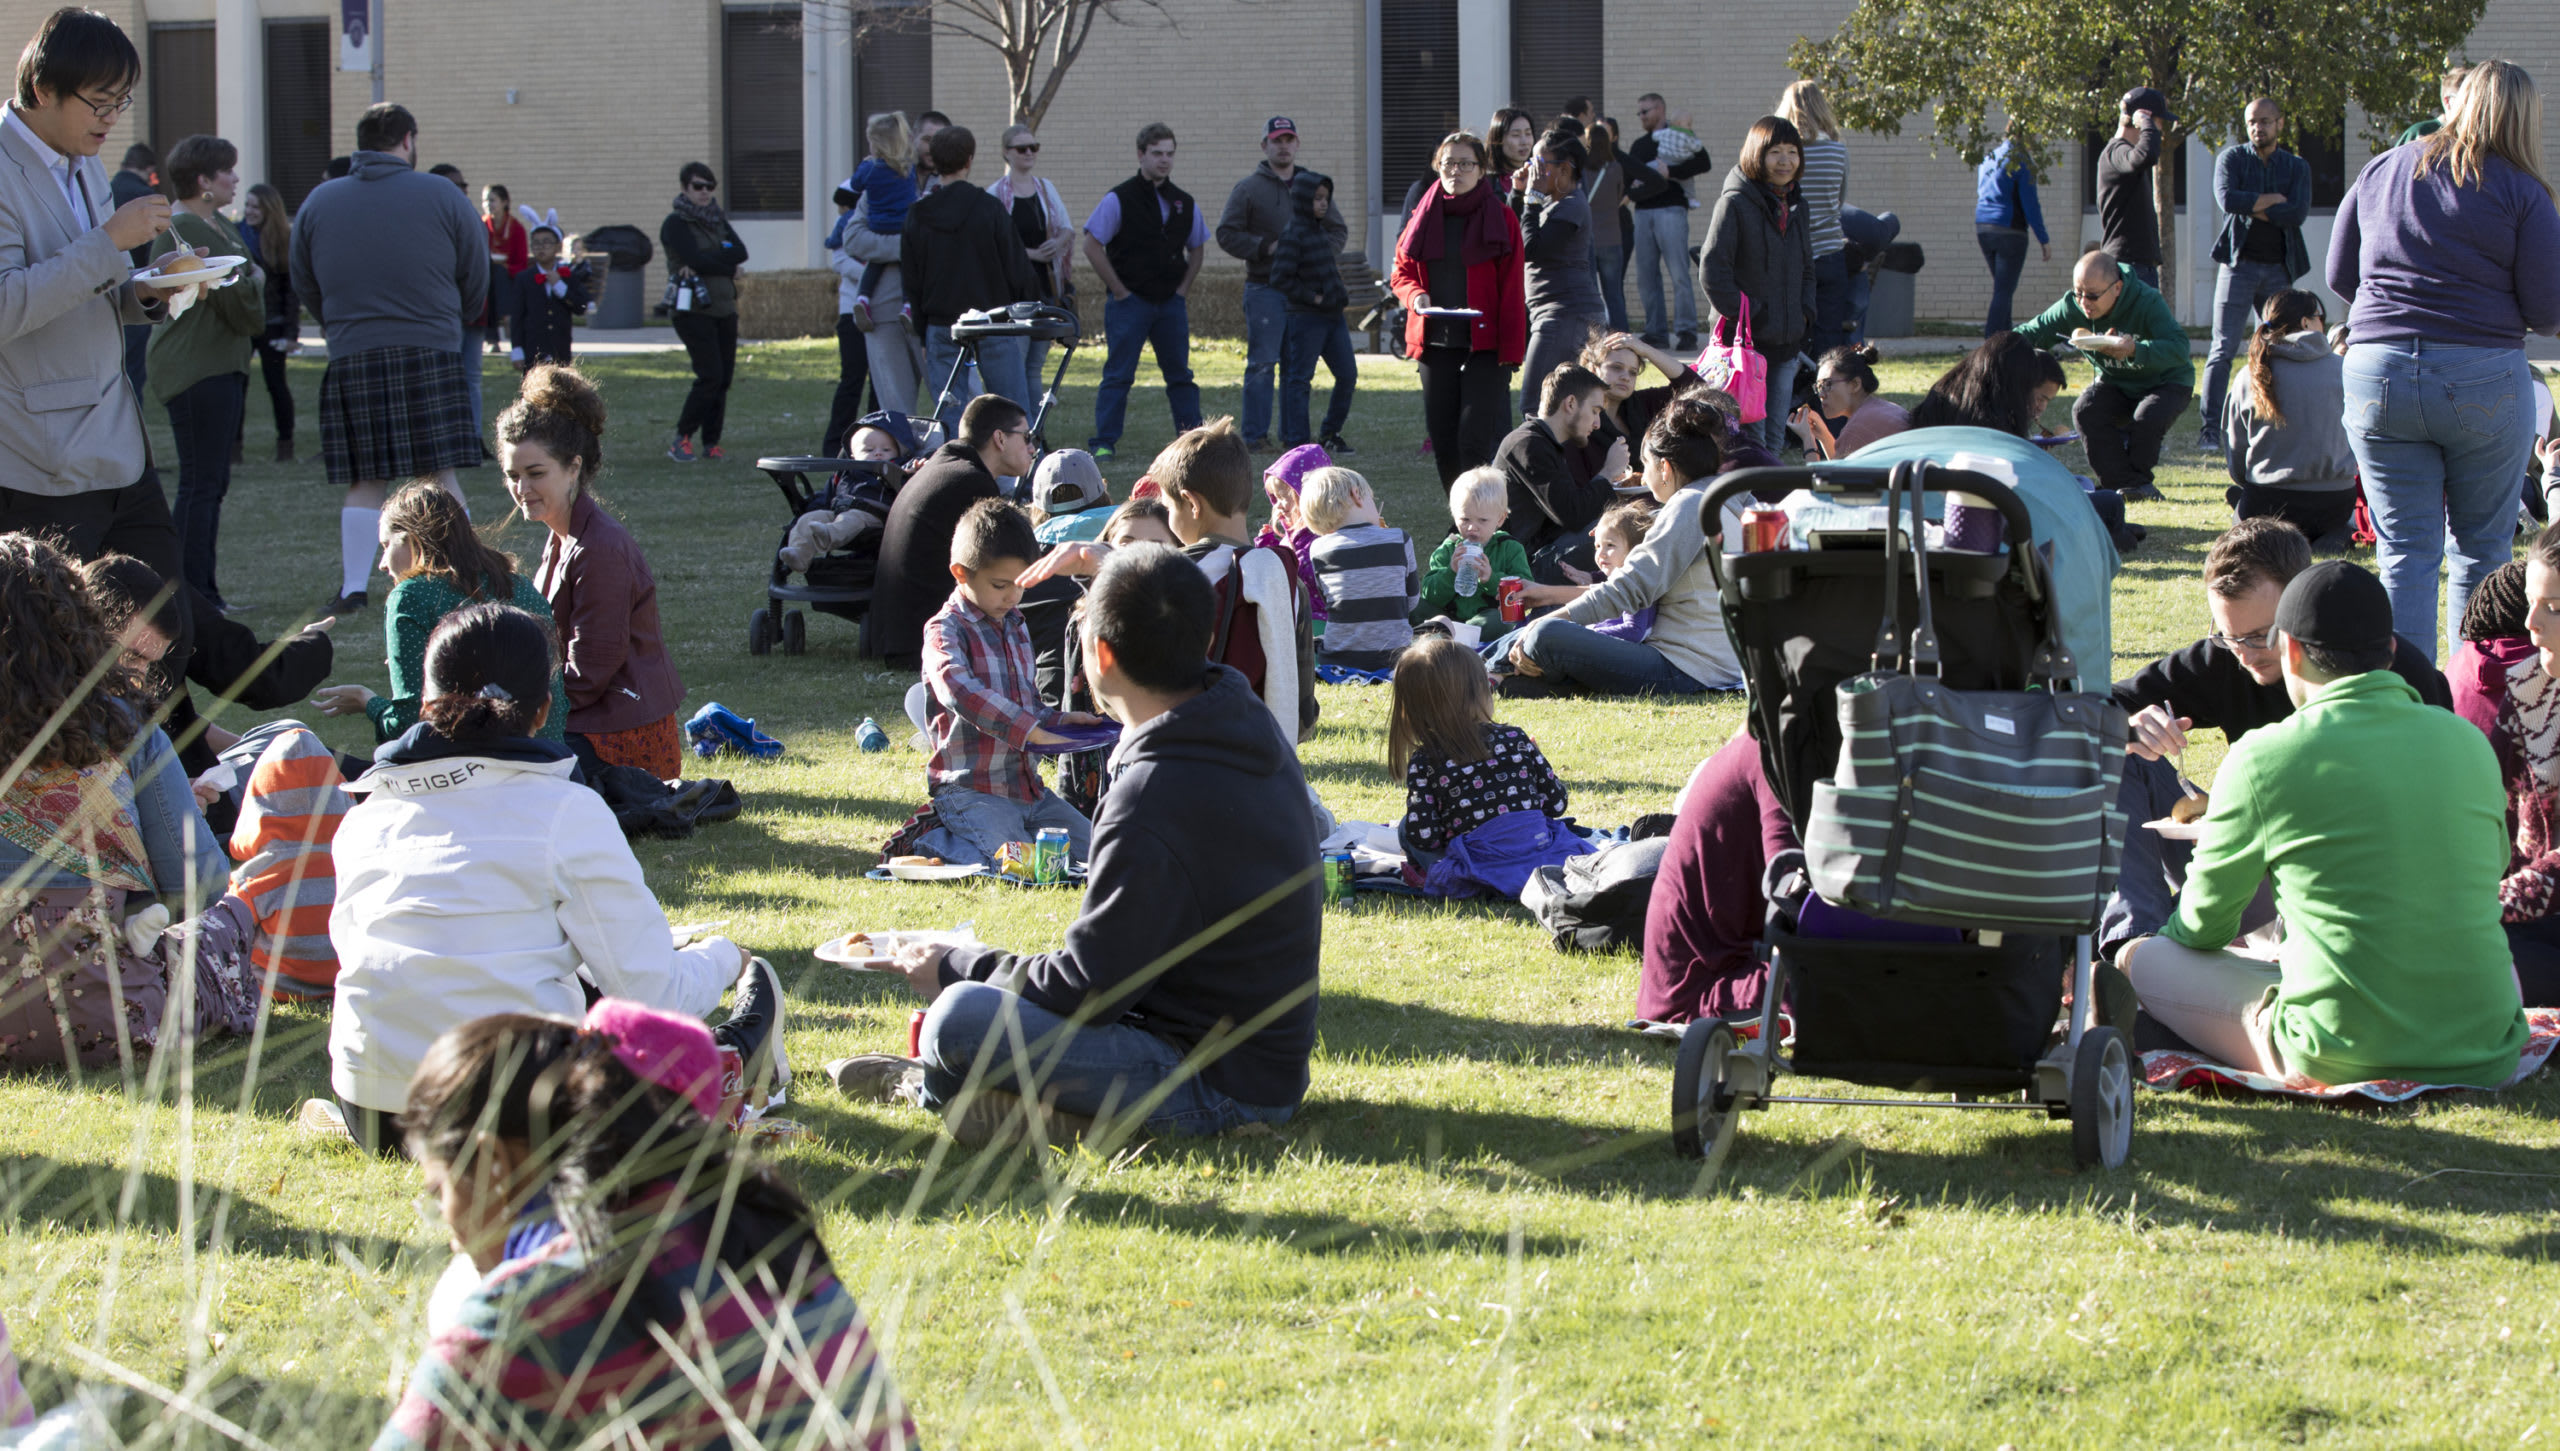 students outside on the campus lawn